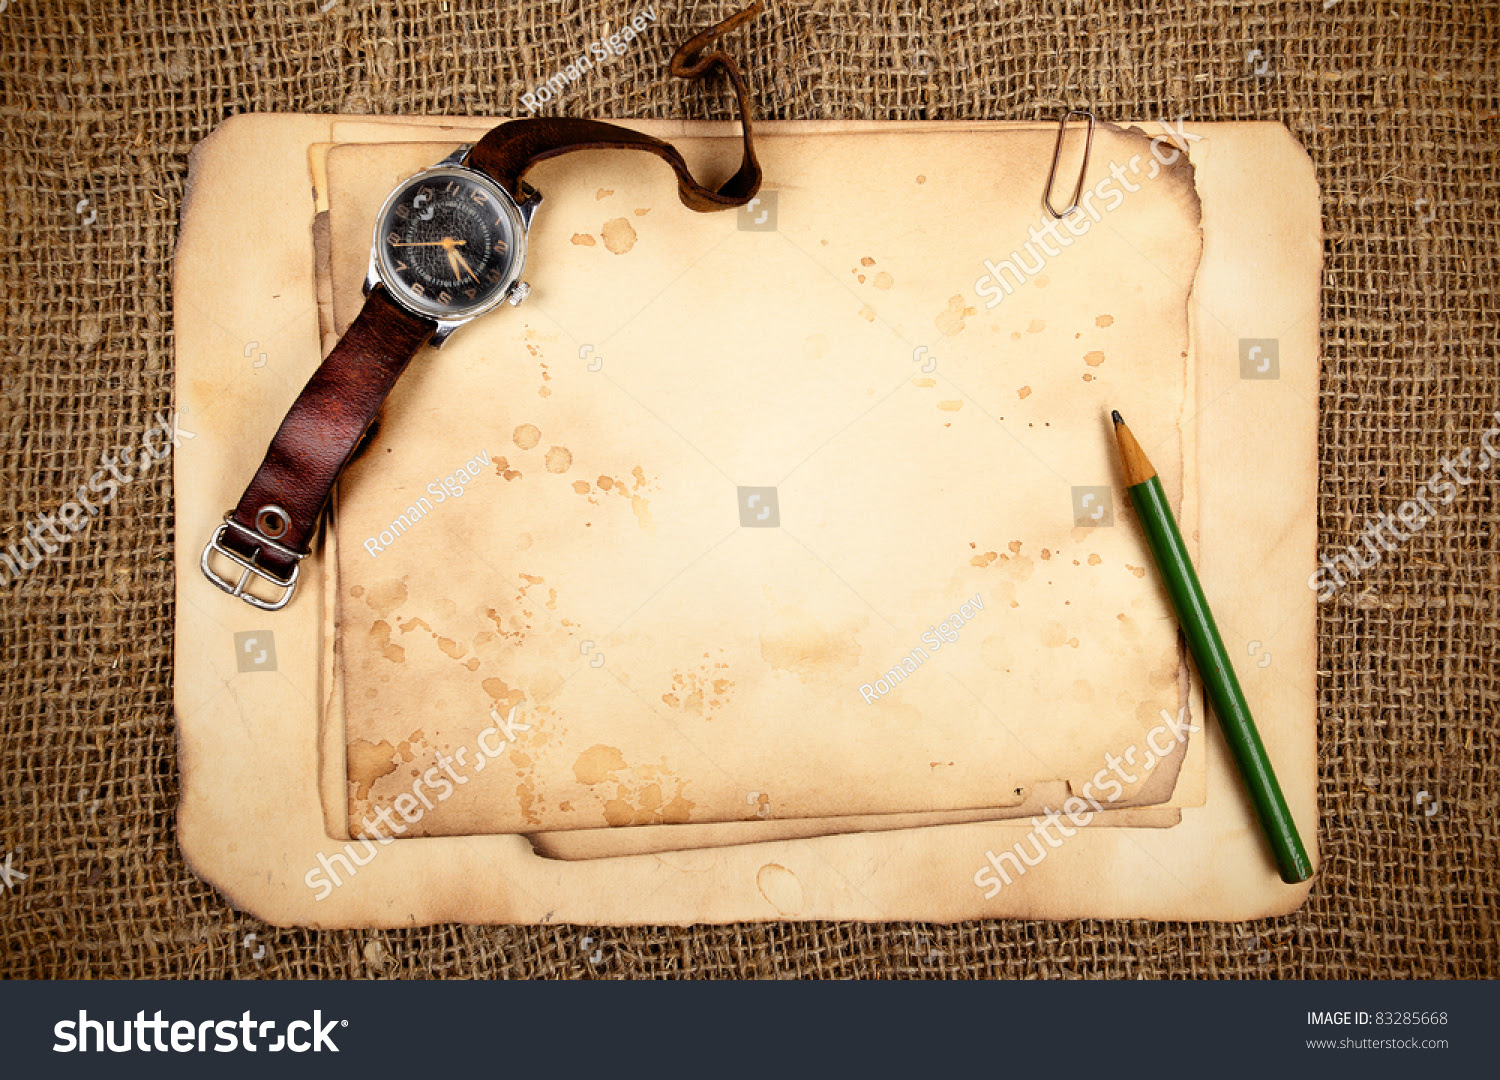 Stilllife Old Blank Papers Wristwatch Stock Photo 83285668 ...